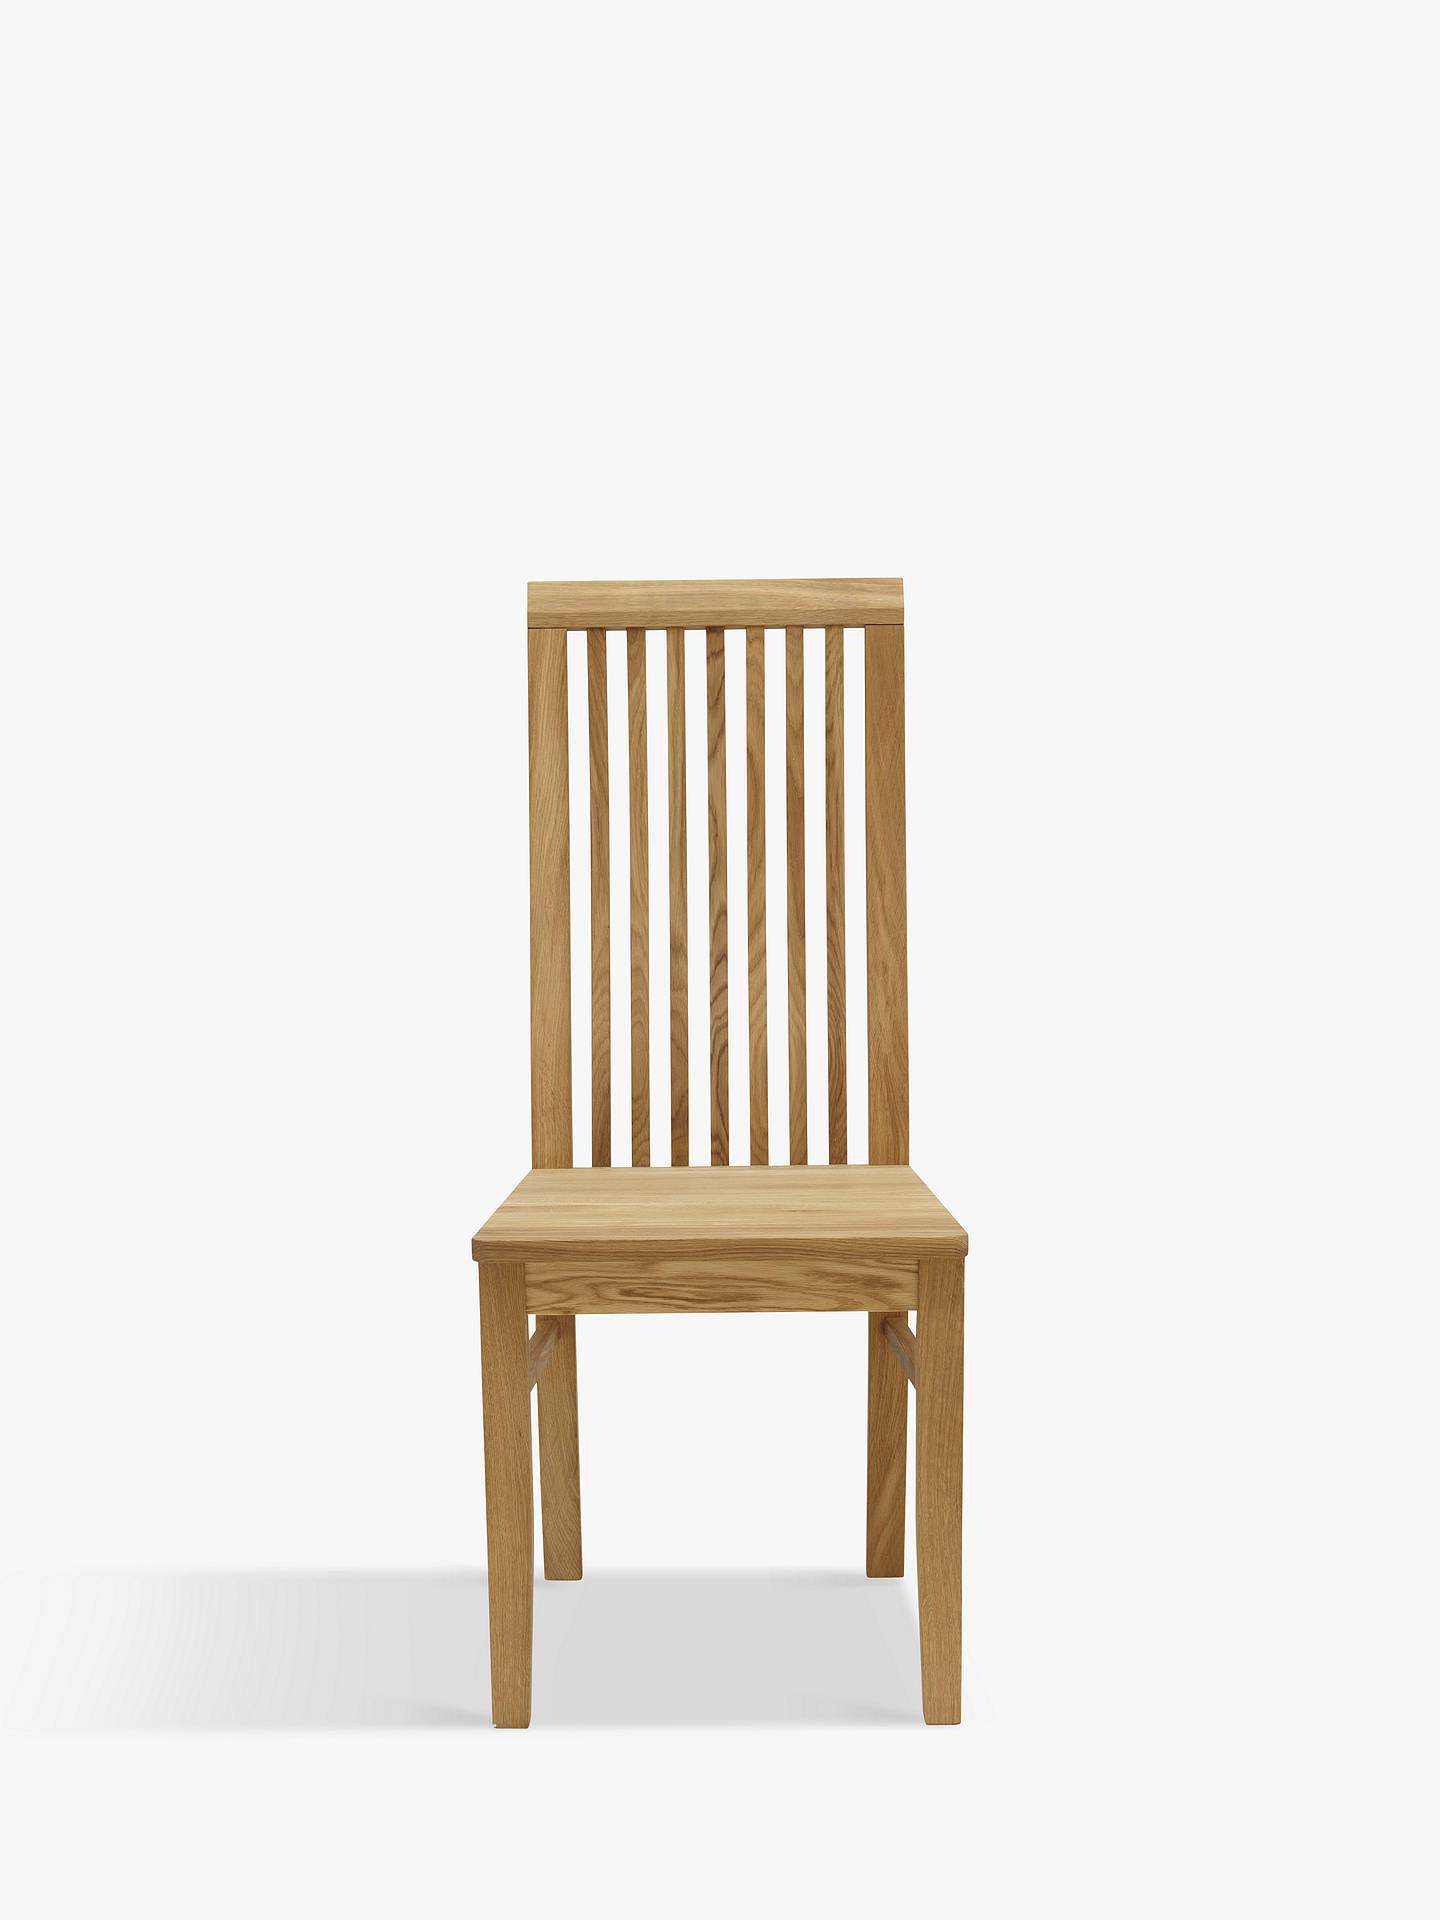 BuyJohn Lewis & Partners Henry Wooden Seat Dining Chair, Oak Online at johnlewis.com